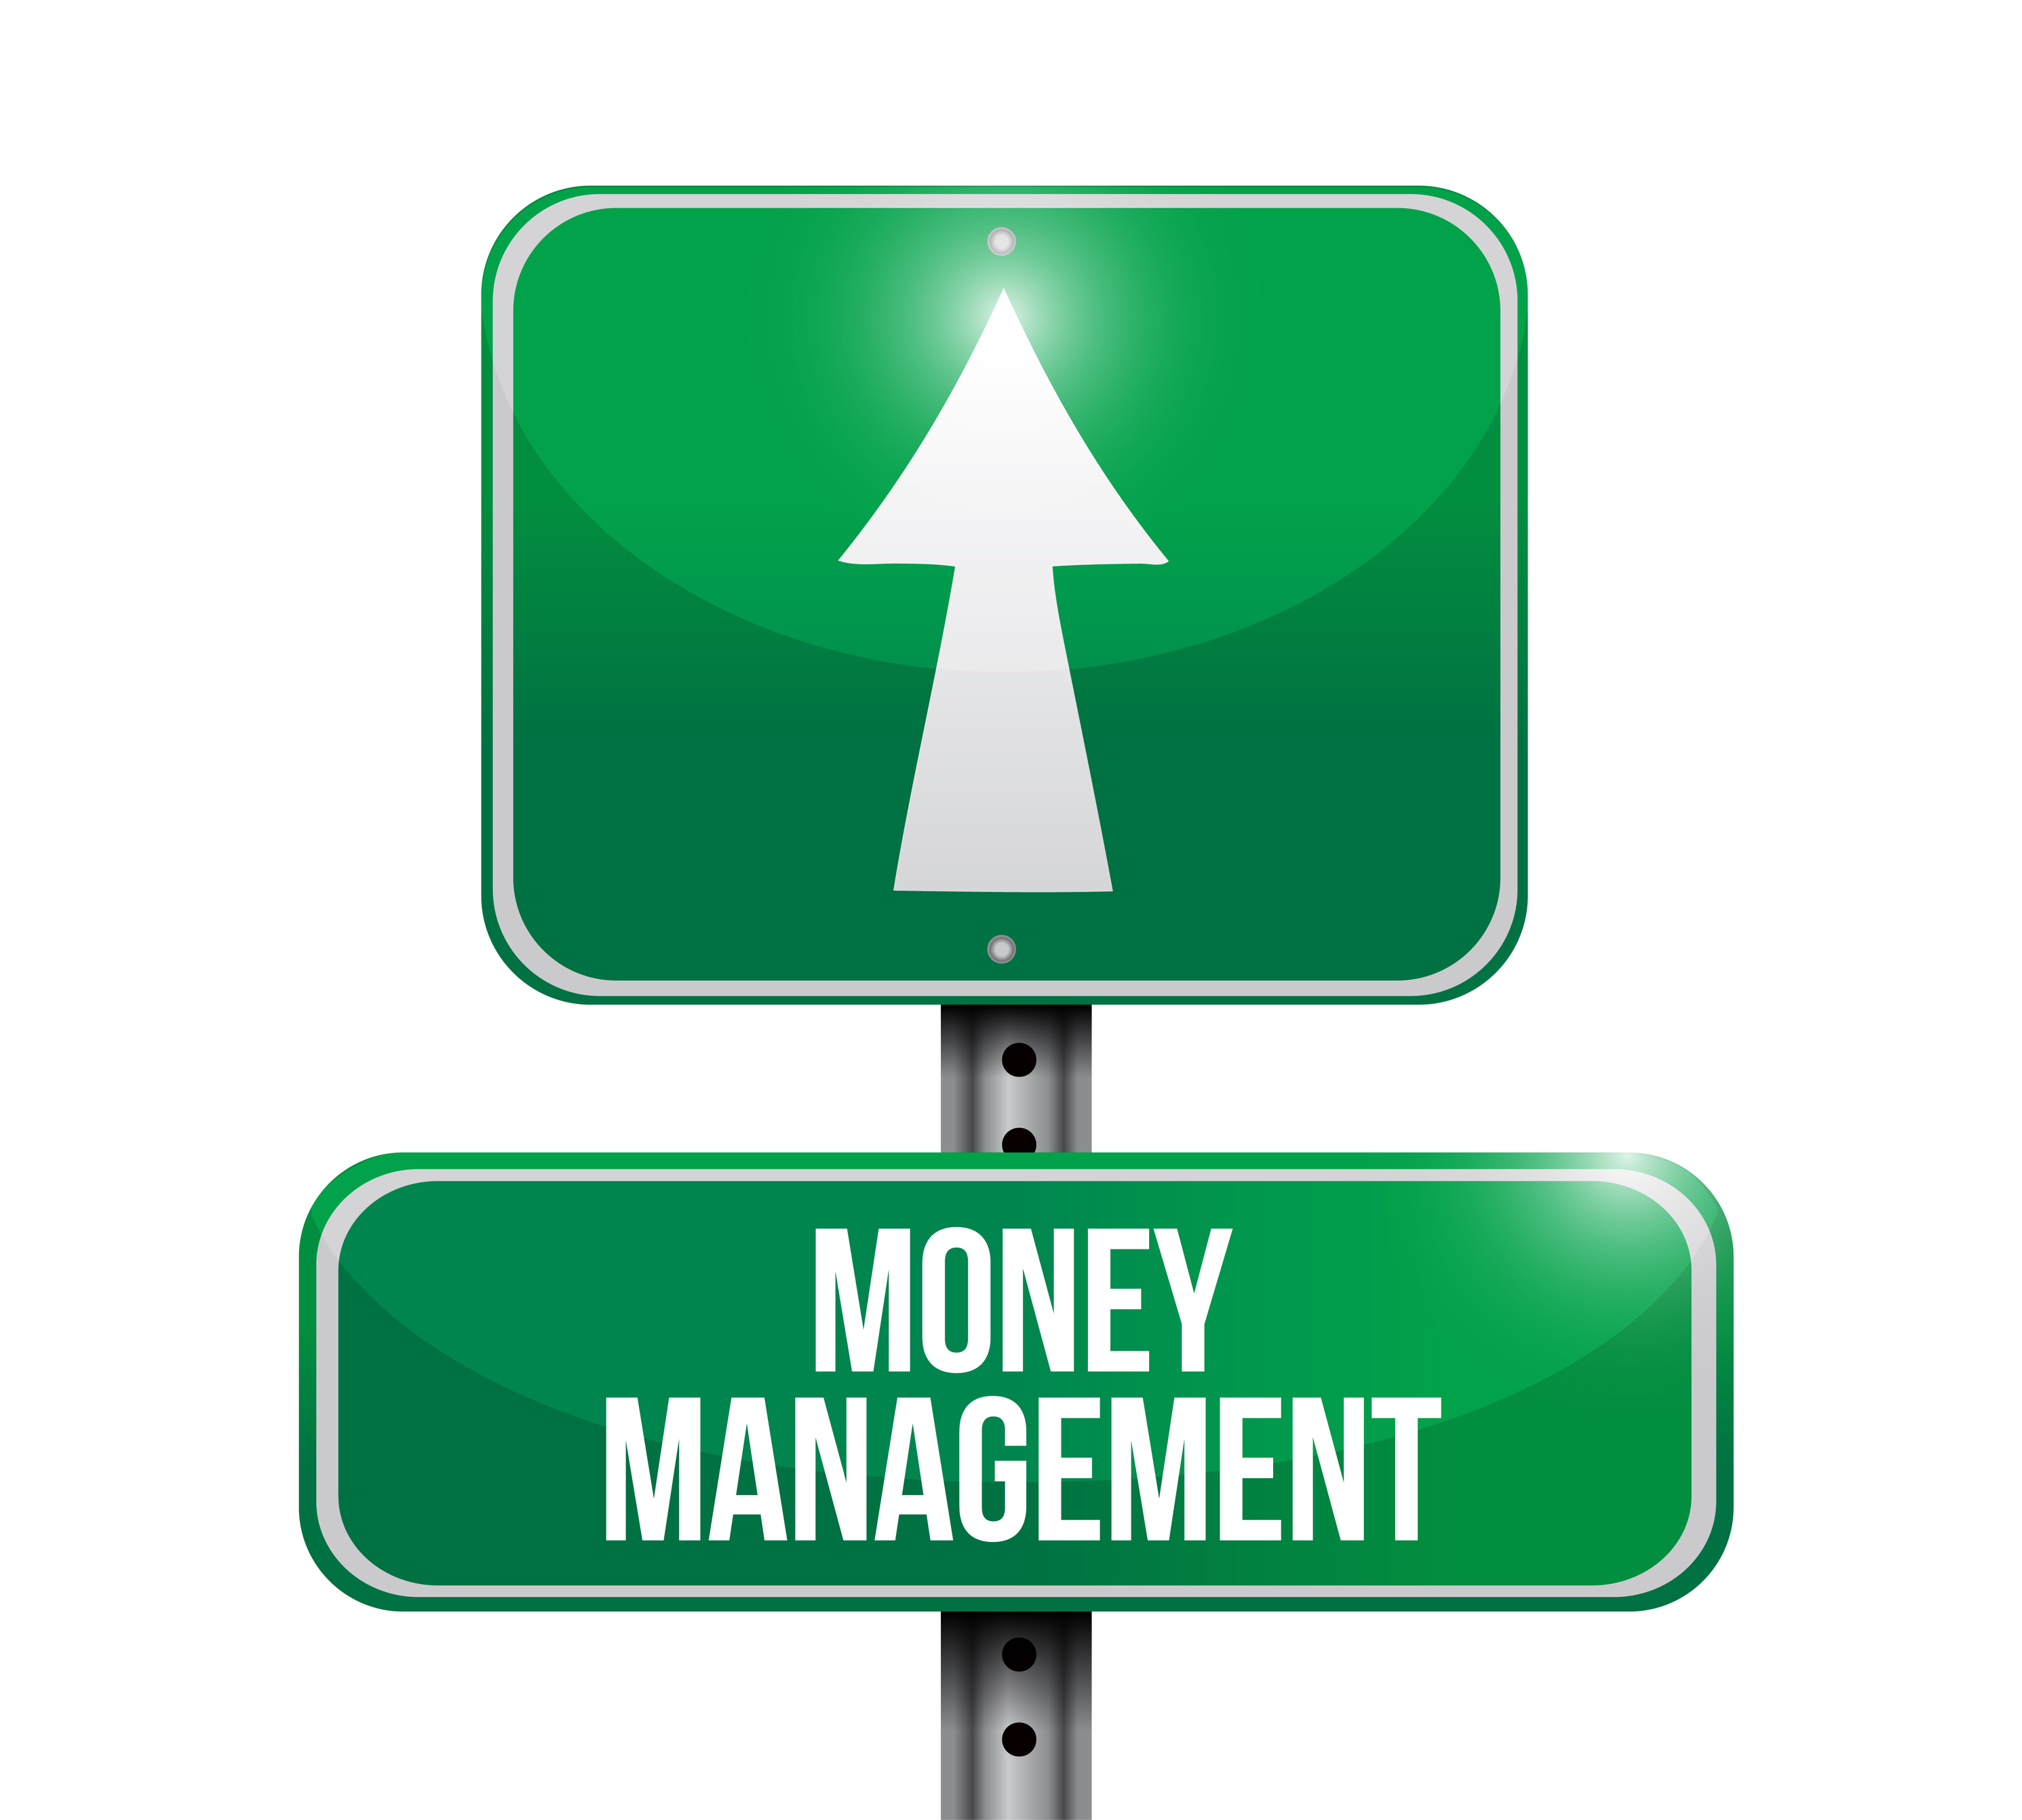 money management accept client funds